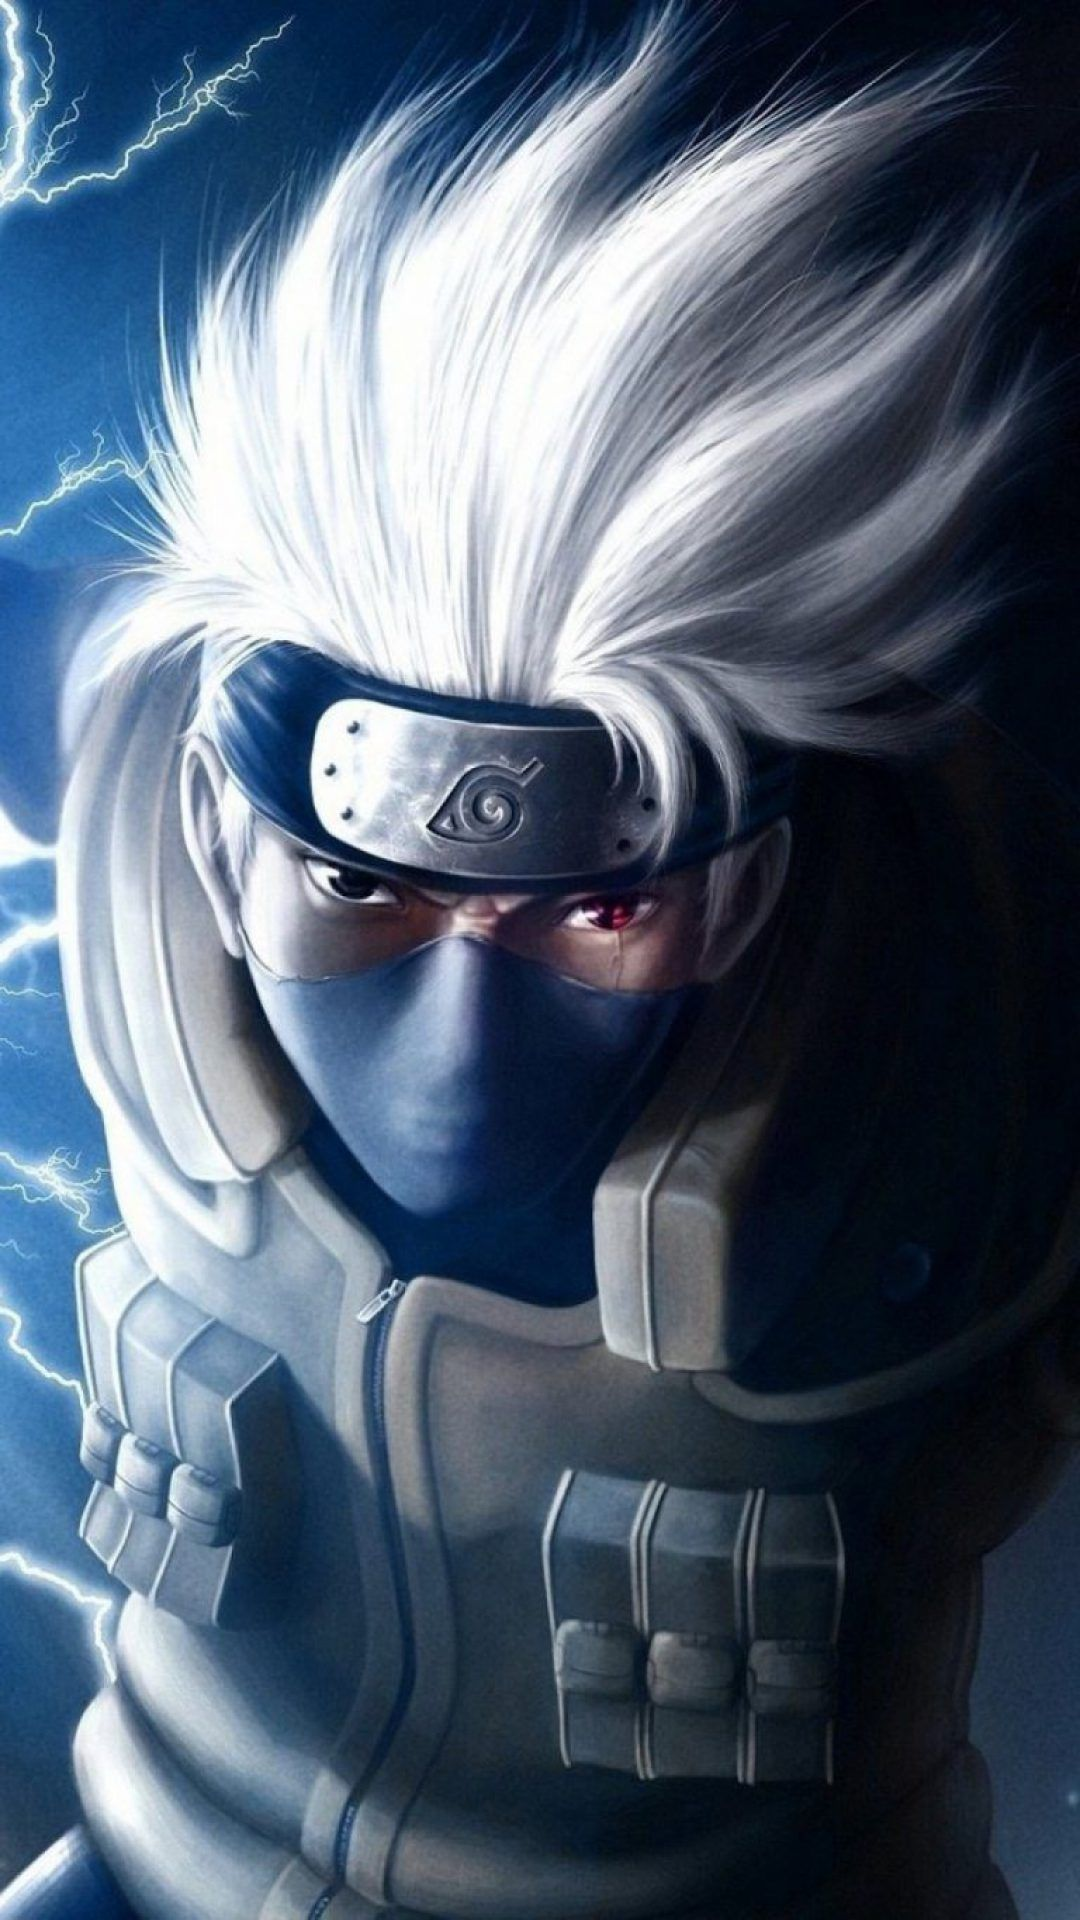 1080x1920 Kakashi - Wallpapers for iPhone